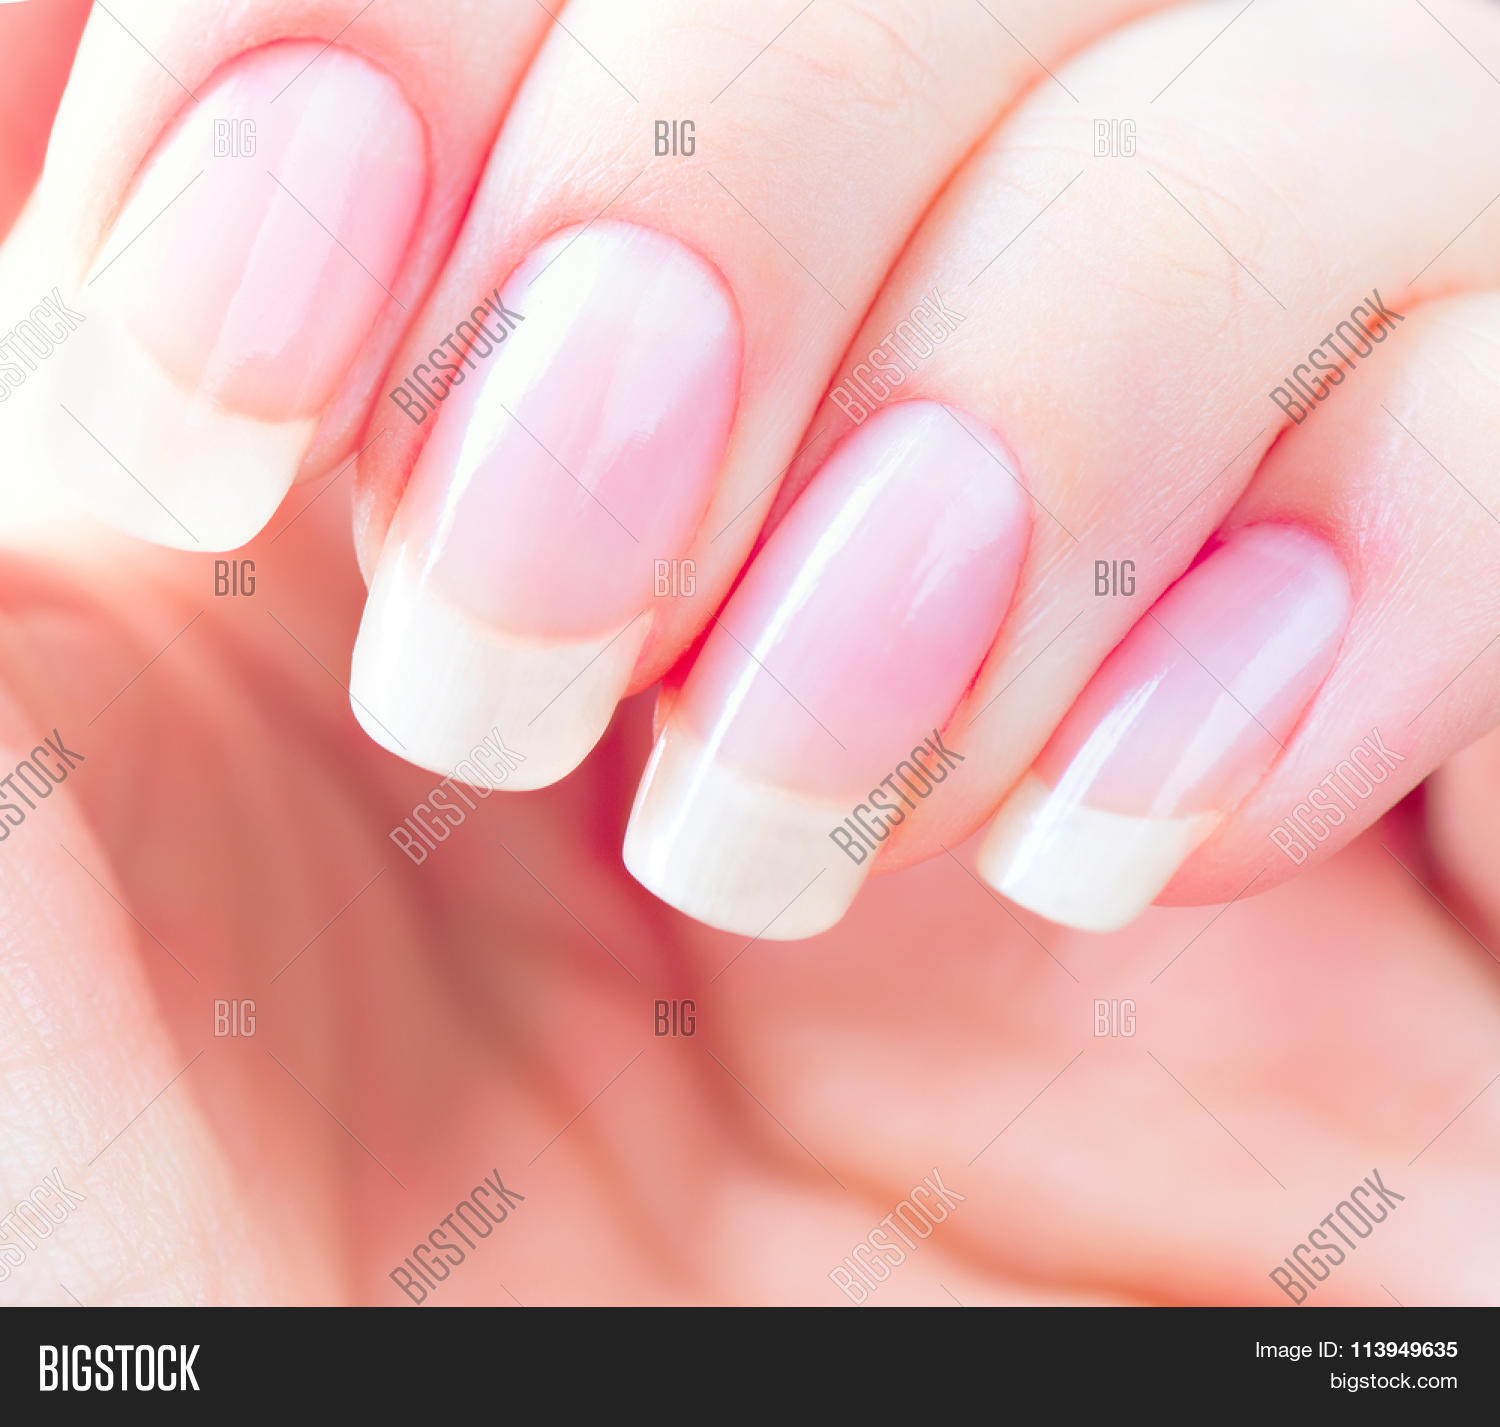 Beautiful Healthy Natural Nails. Image & Photo | Bigstock